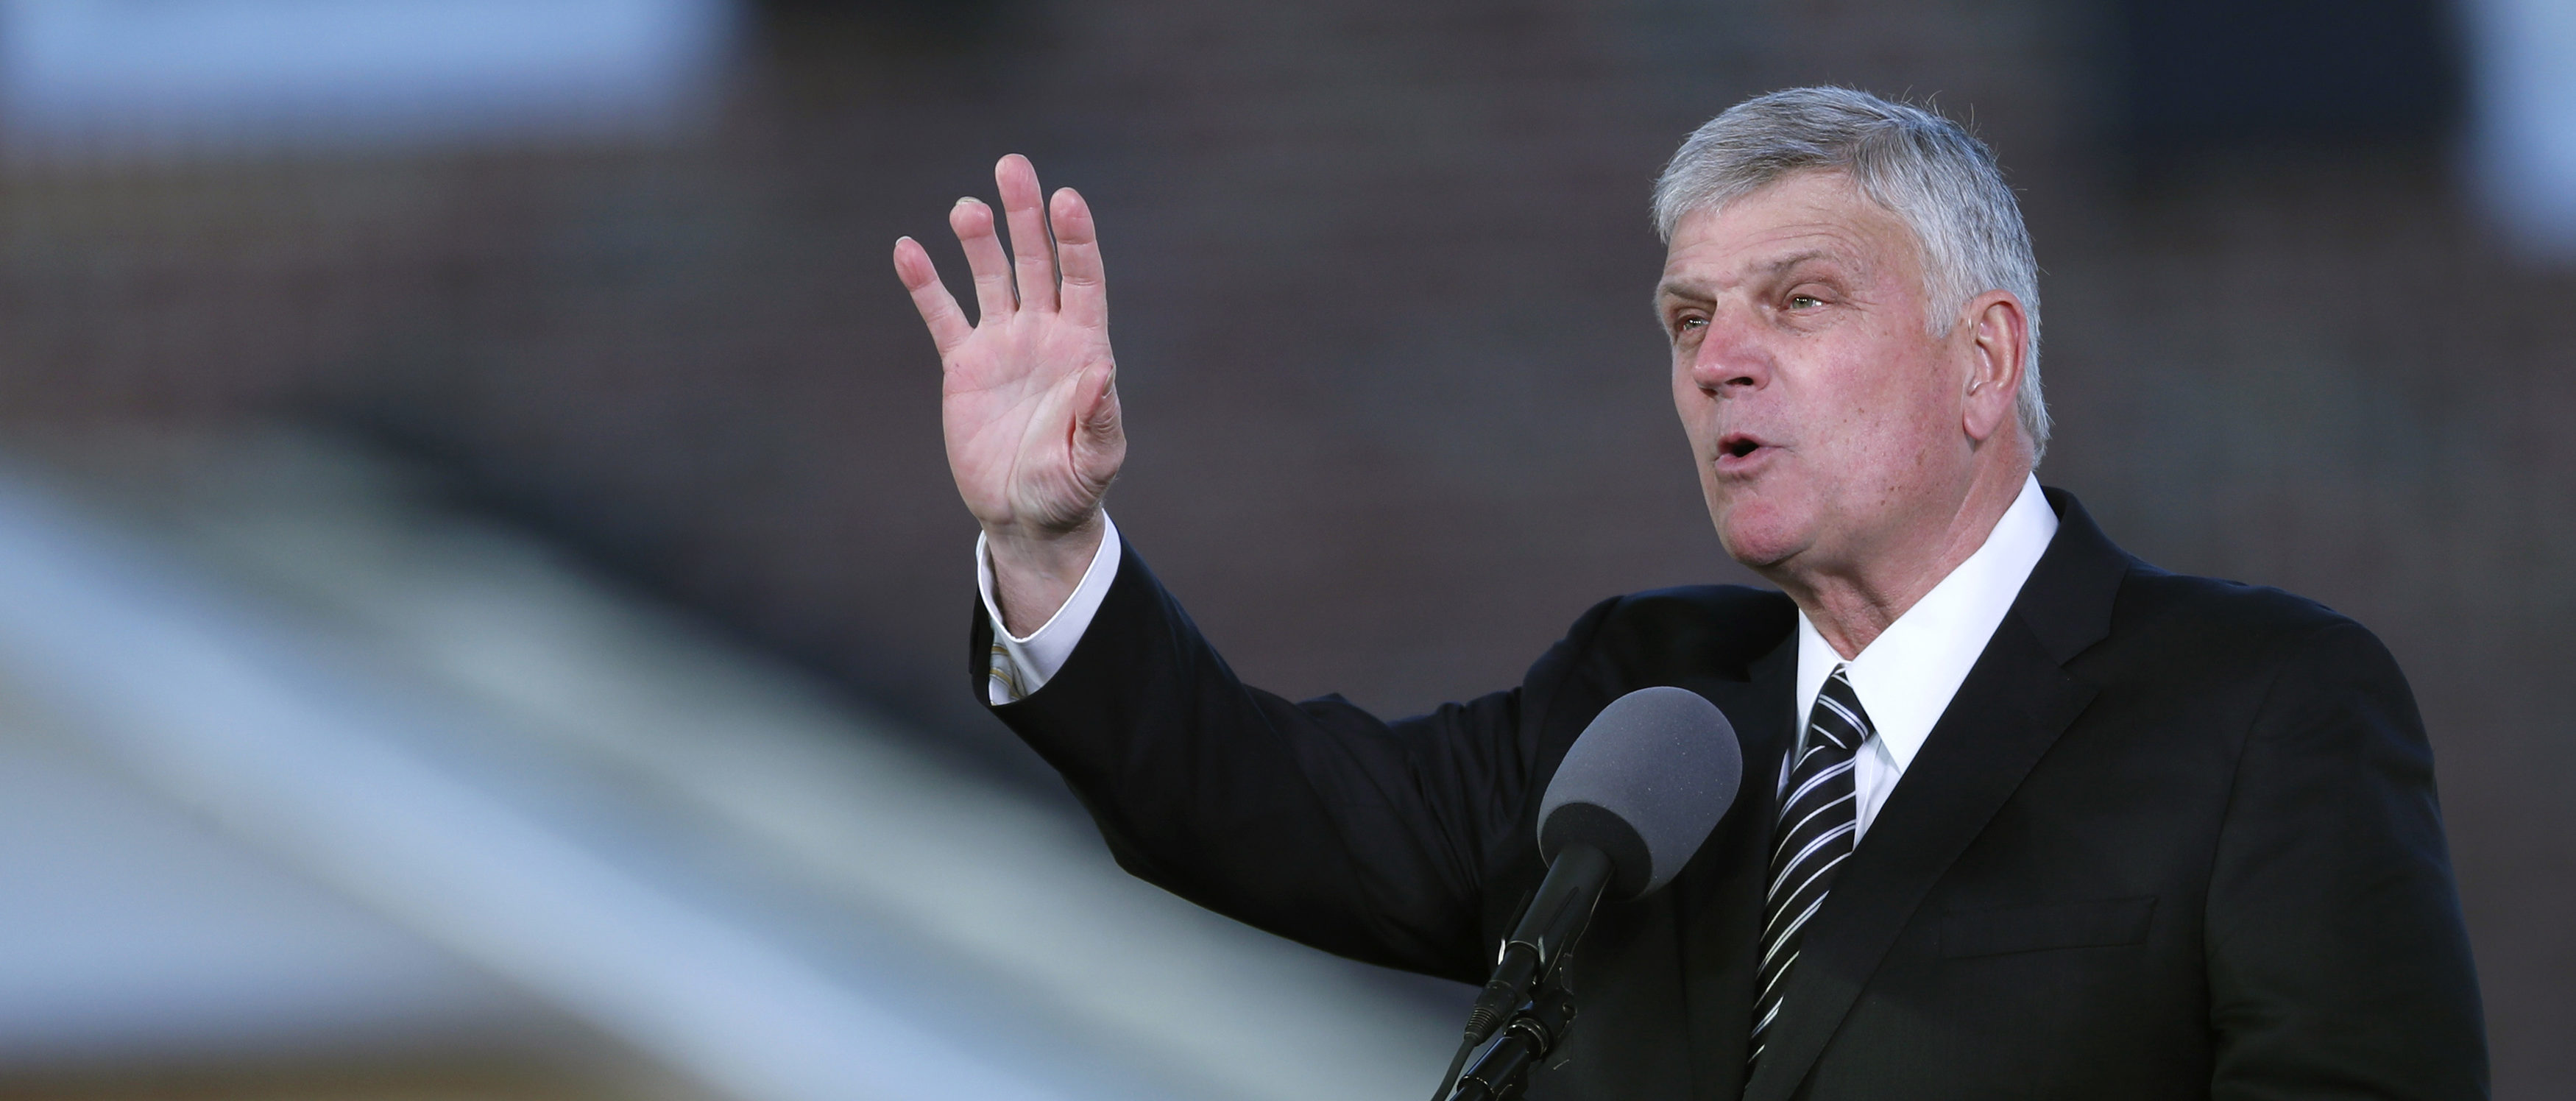 Franklin Graham speaks during funeral service for the late U.S. evangelist Billy Graham in Charlotte